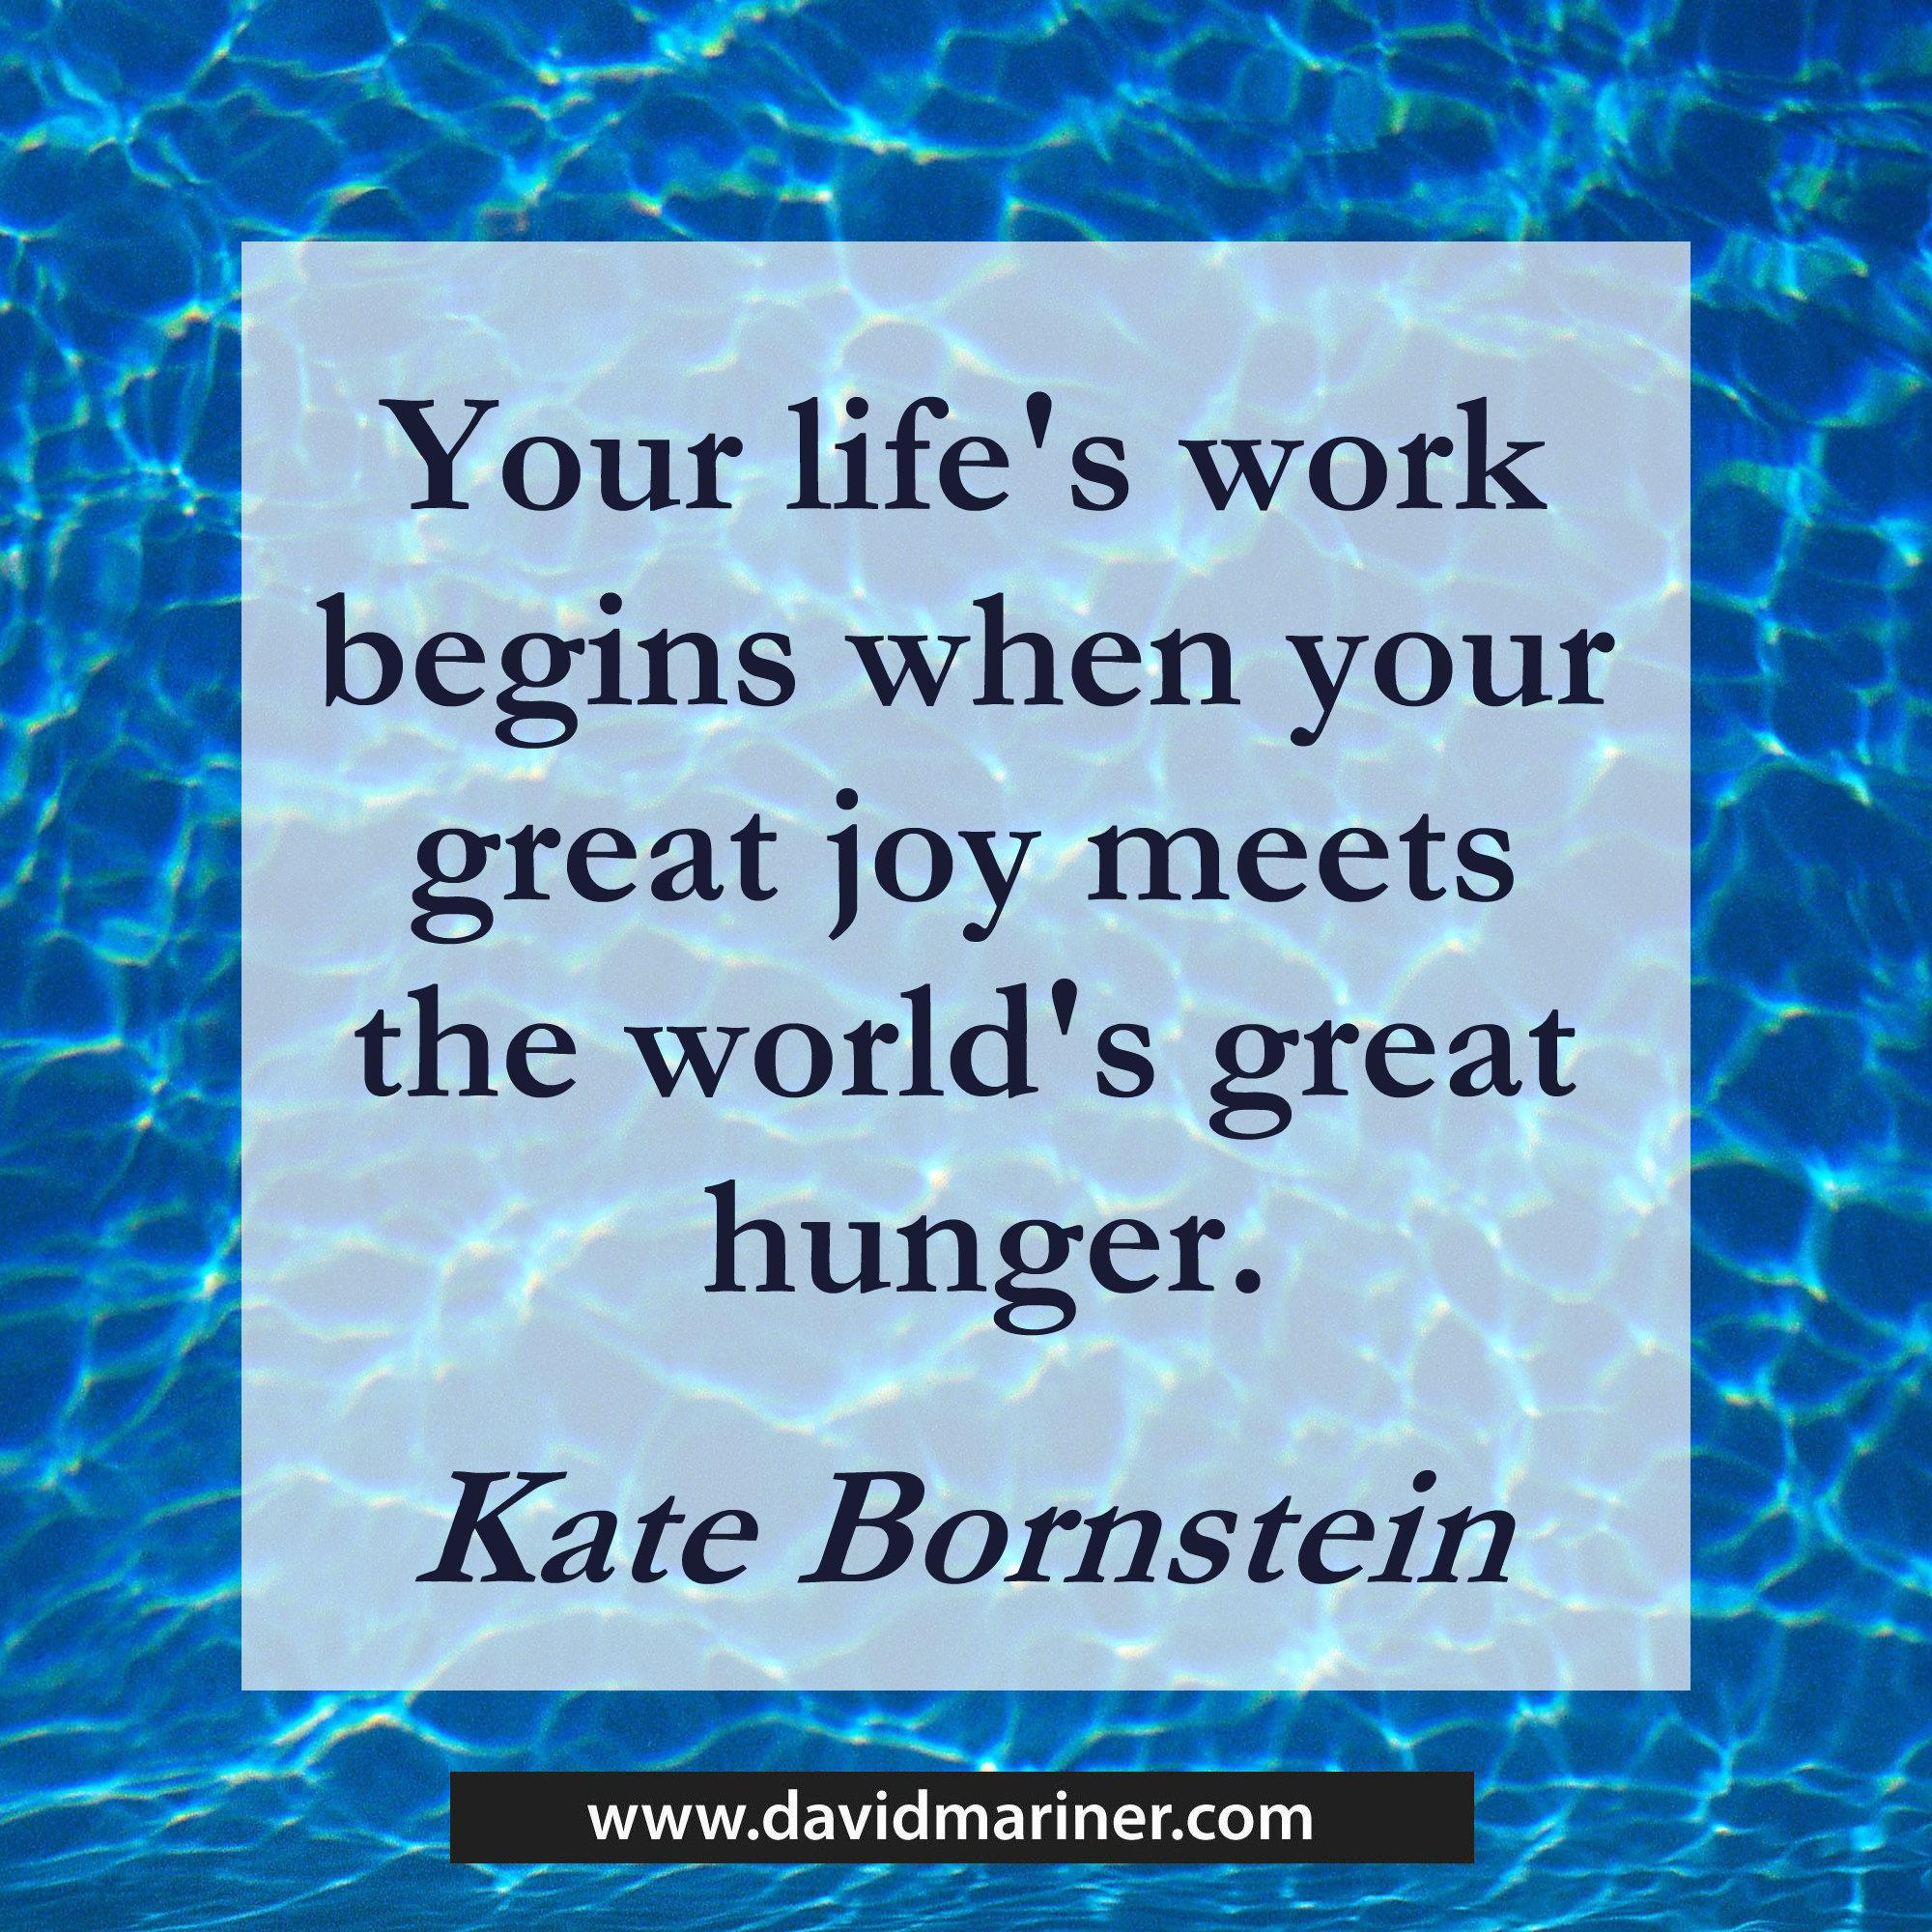 Your life's work begins when your great joy meets the world's great hunger.